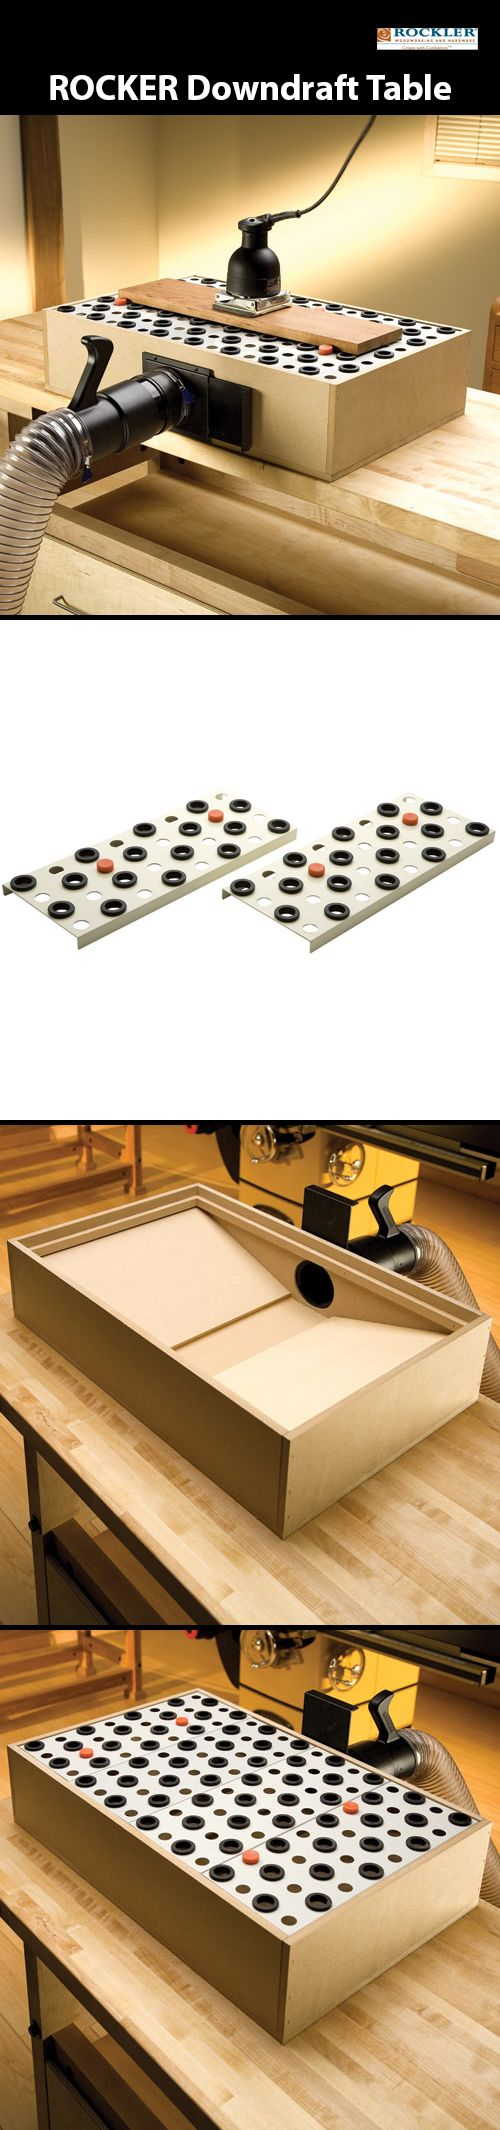 a box for Rockler Downdraft Table Panels